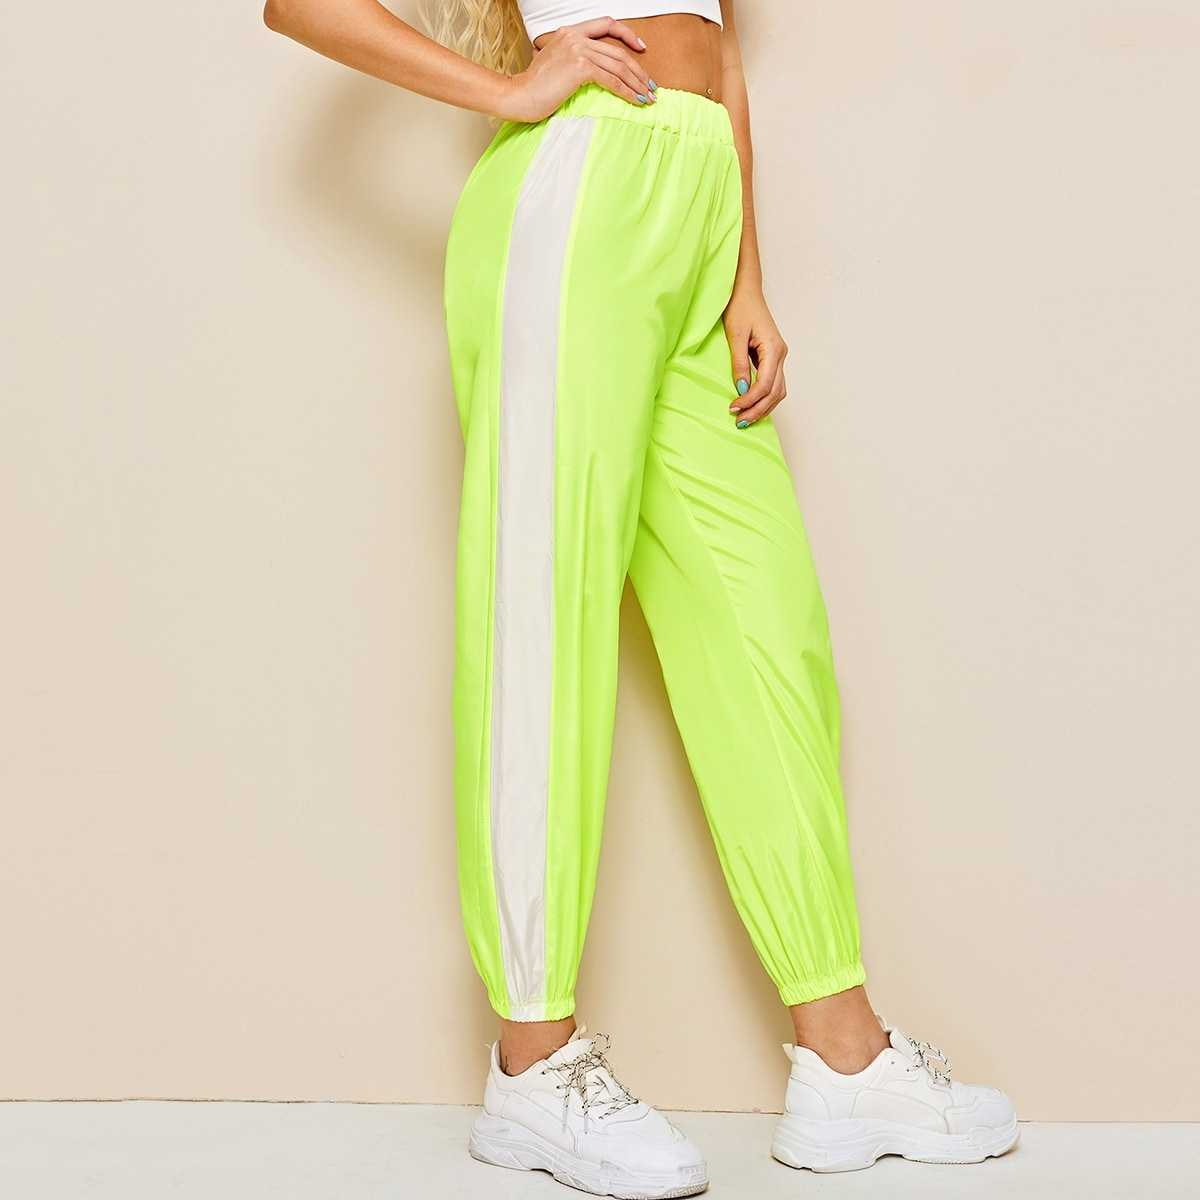 Elastic Waist Neon Lime Cut And Sew Pants in Green Bright by ROMWE on GOOFASH